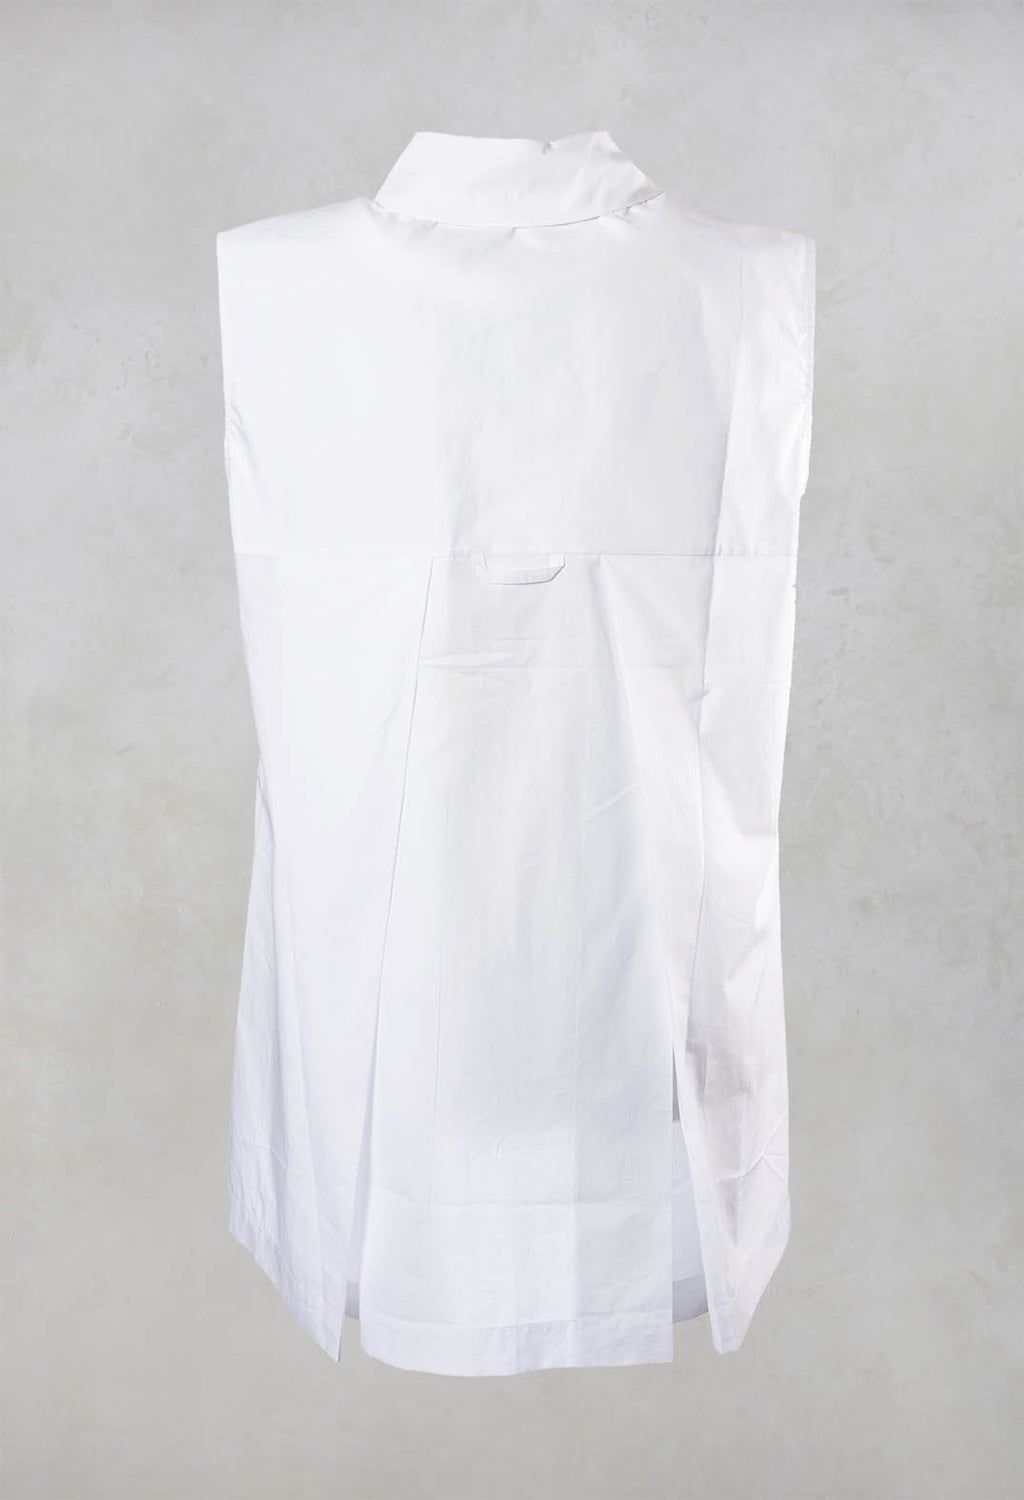 Sleeveless Shirt in White